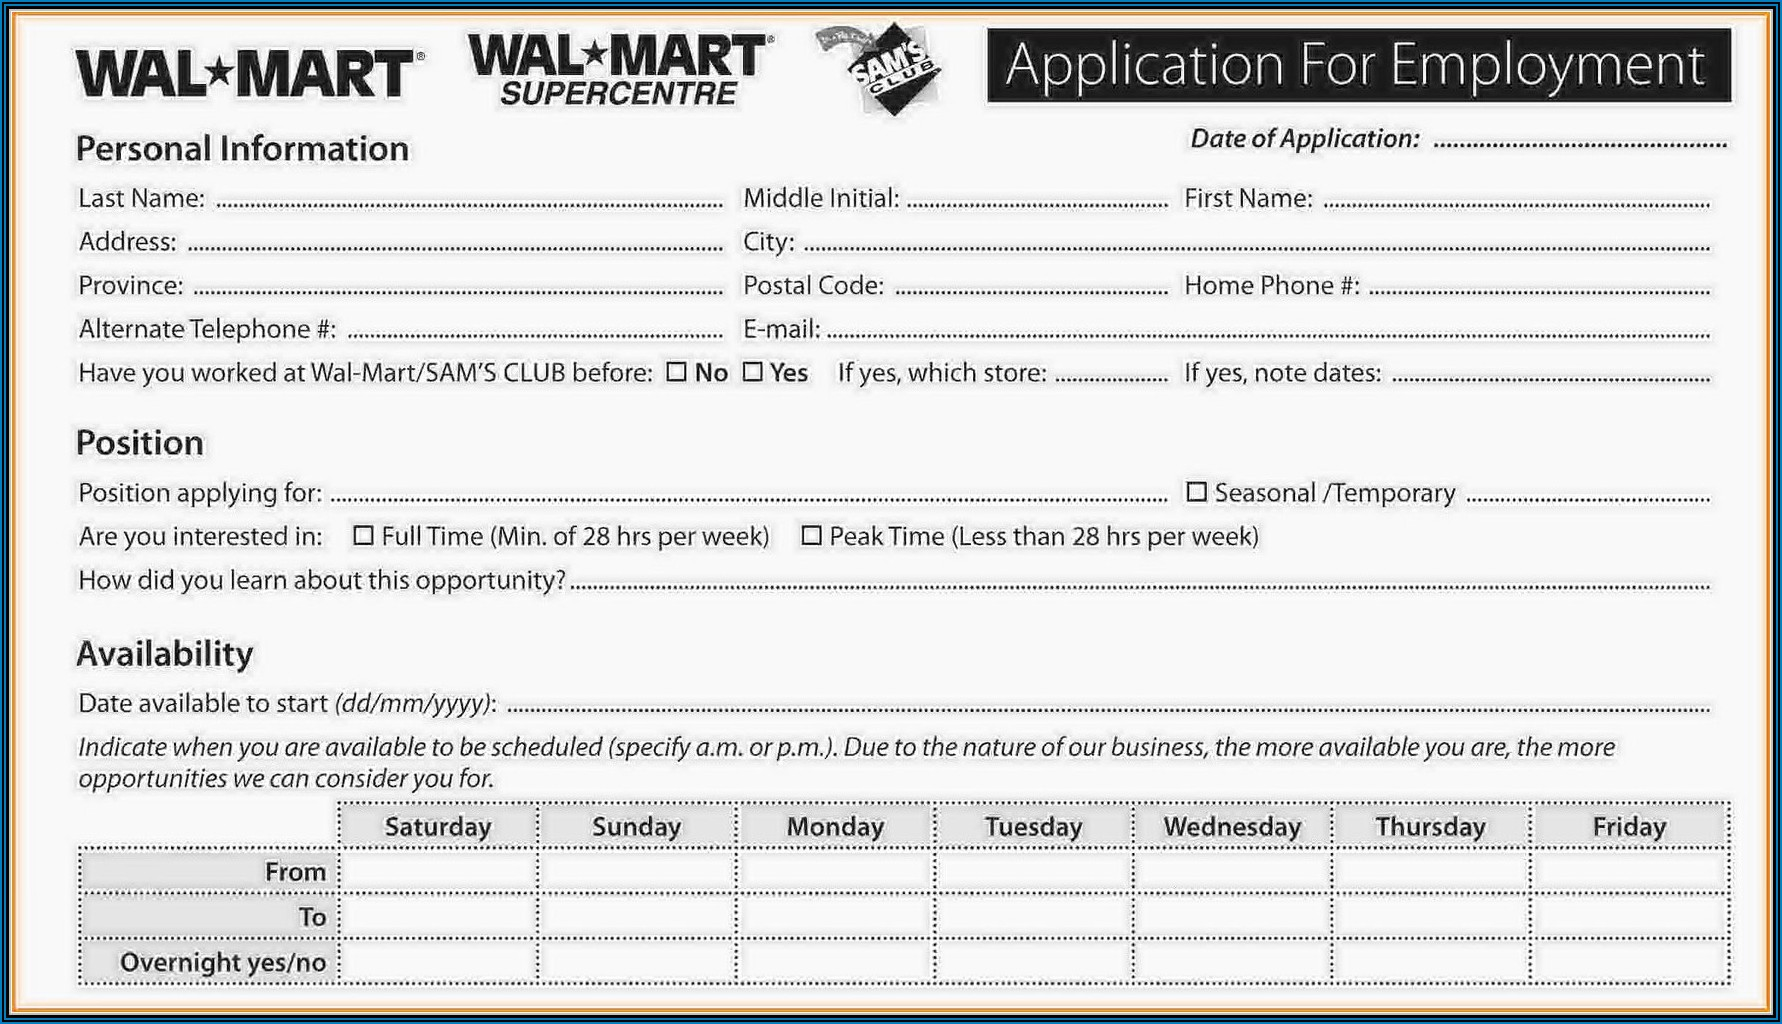 How To Get My W2 Form Online From Walmart